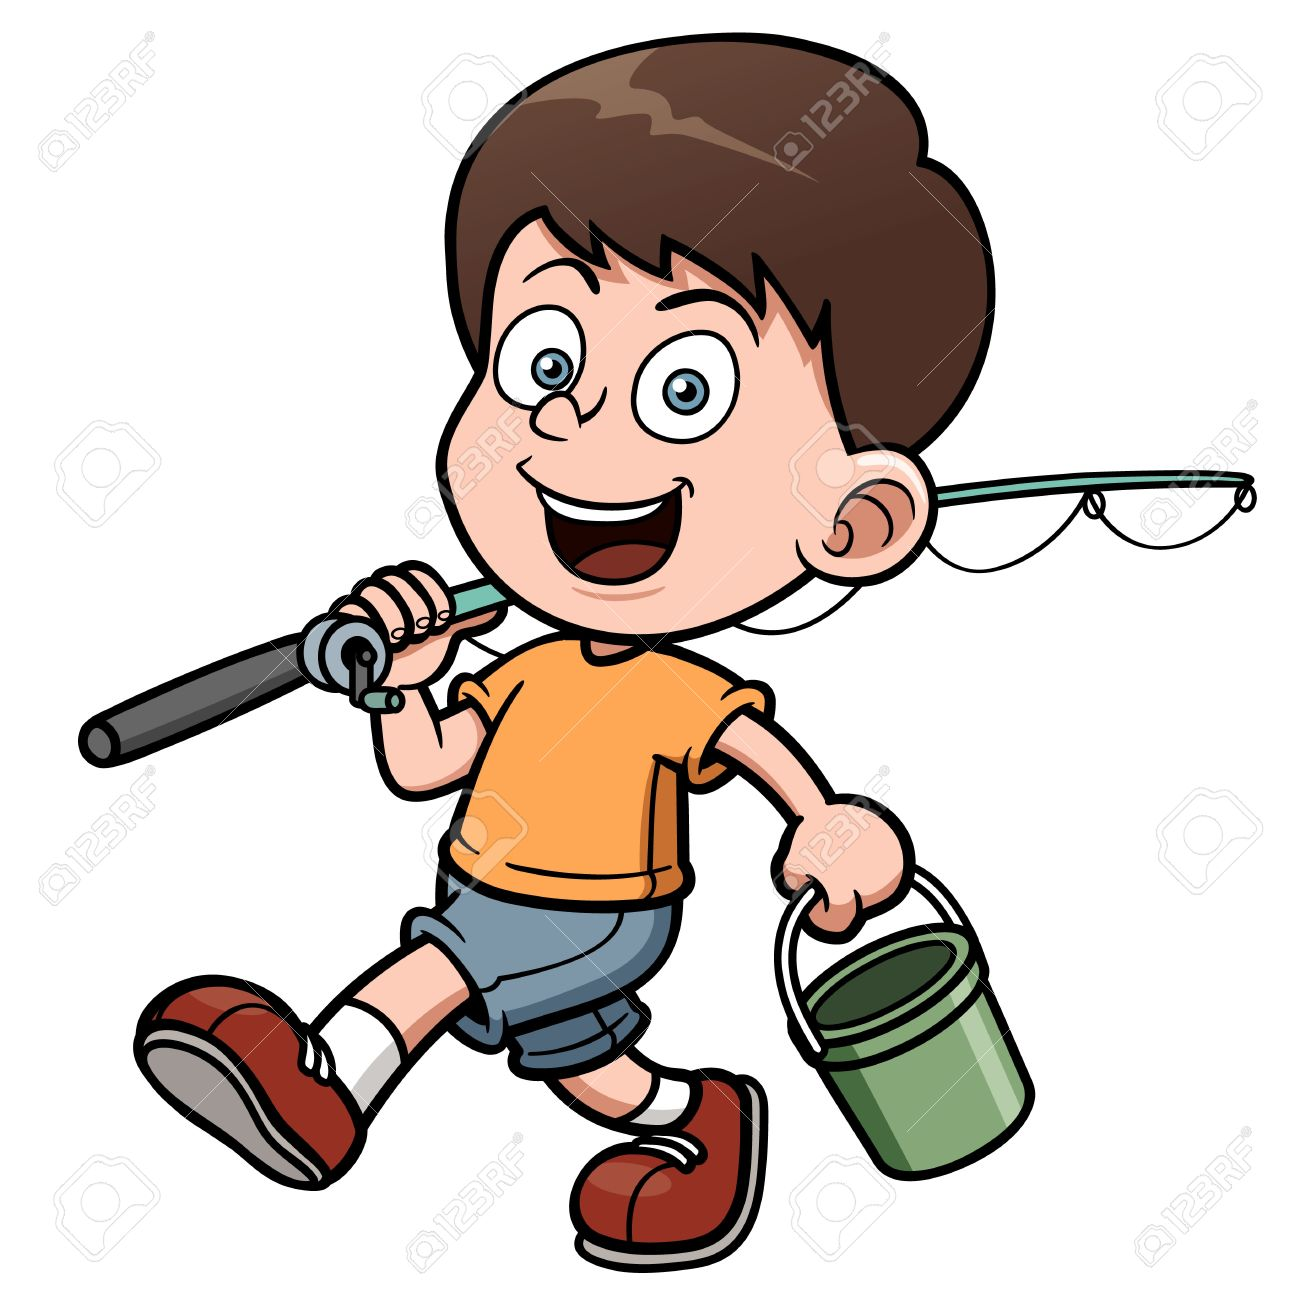 vector illustration of boy fishing royalty free cliparts vectors rh 123rf com  little boy fishing clipart